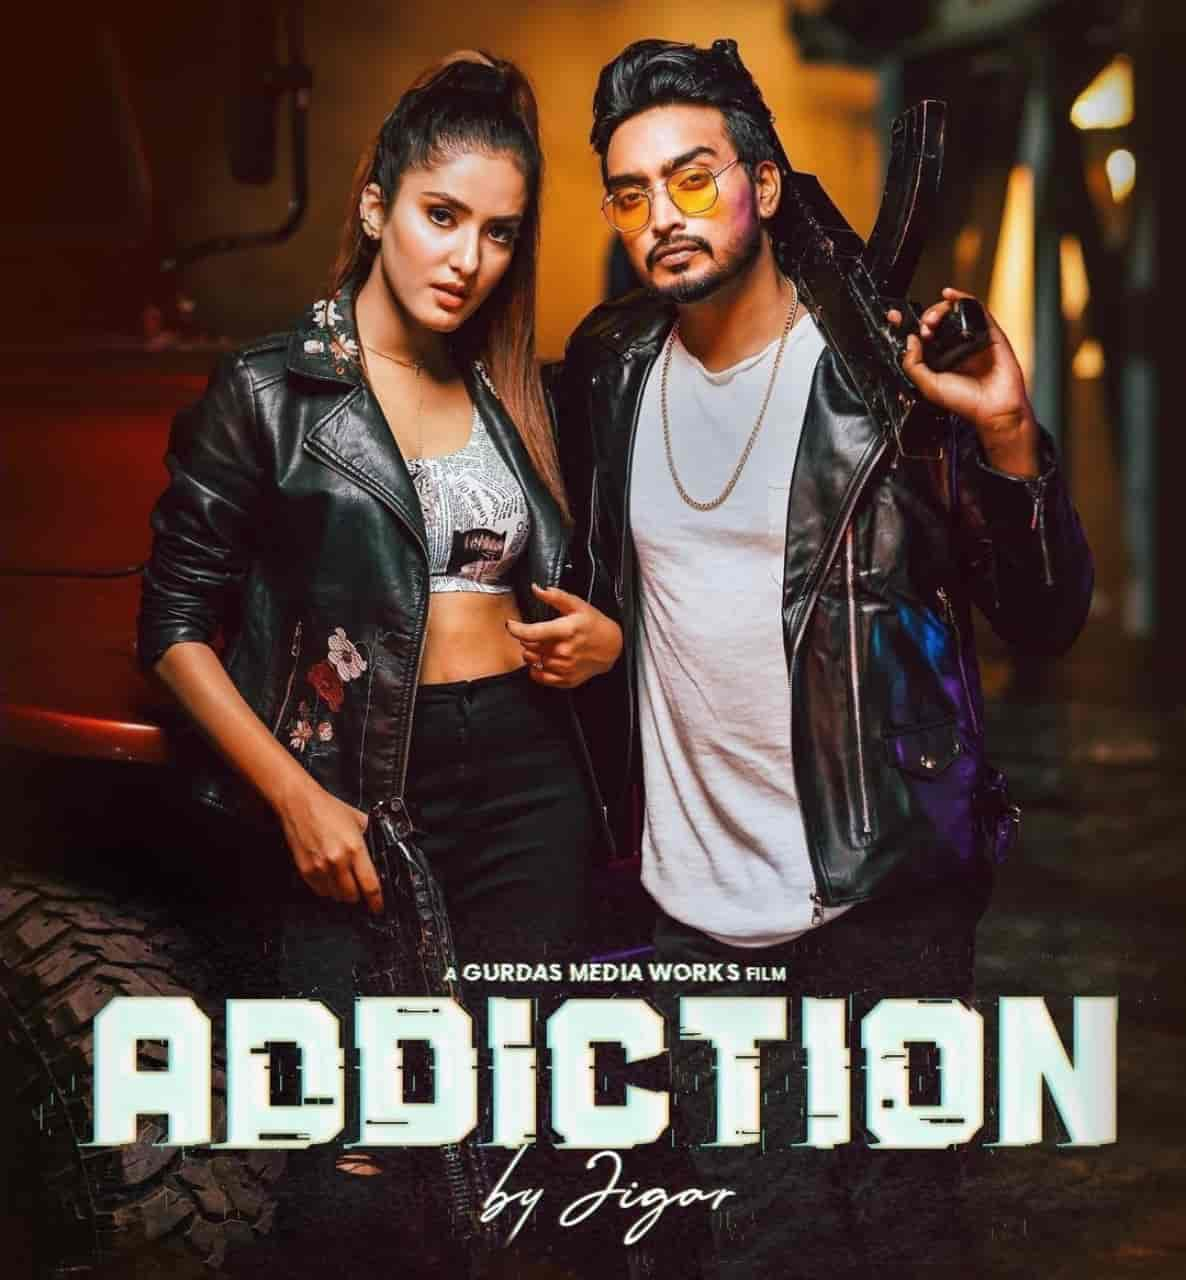 Addiction Punjabi Song Image Features Jigar And Akaisha Vats.